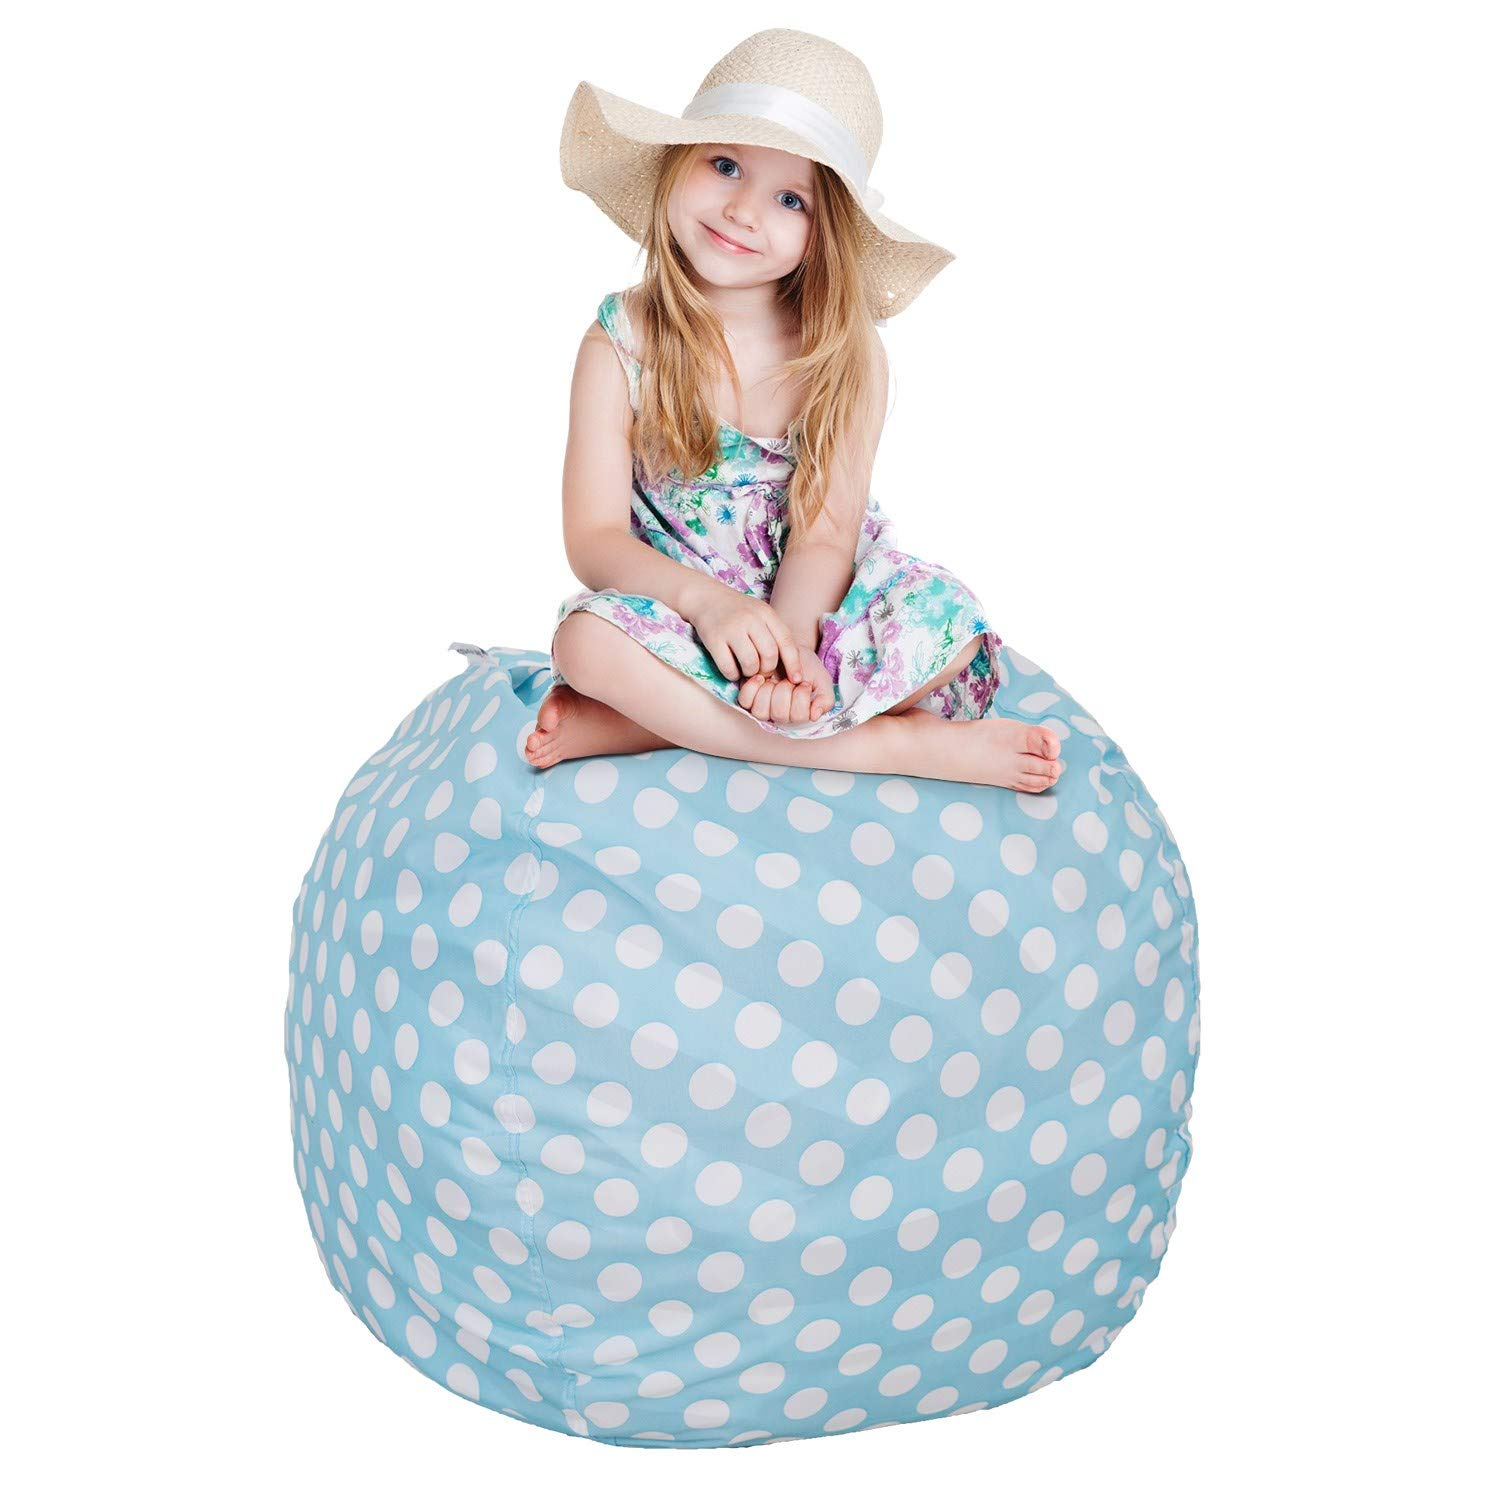 CALA EXTRA LARGE 38'' Cotton Canvas Stuffed Animals Bean Bag Chair For Kids- Pouf Plush Toys, Blankets, Towels & Clothes For Storage(Blue Polka Dot)